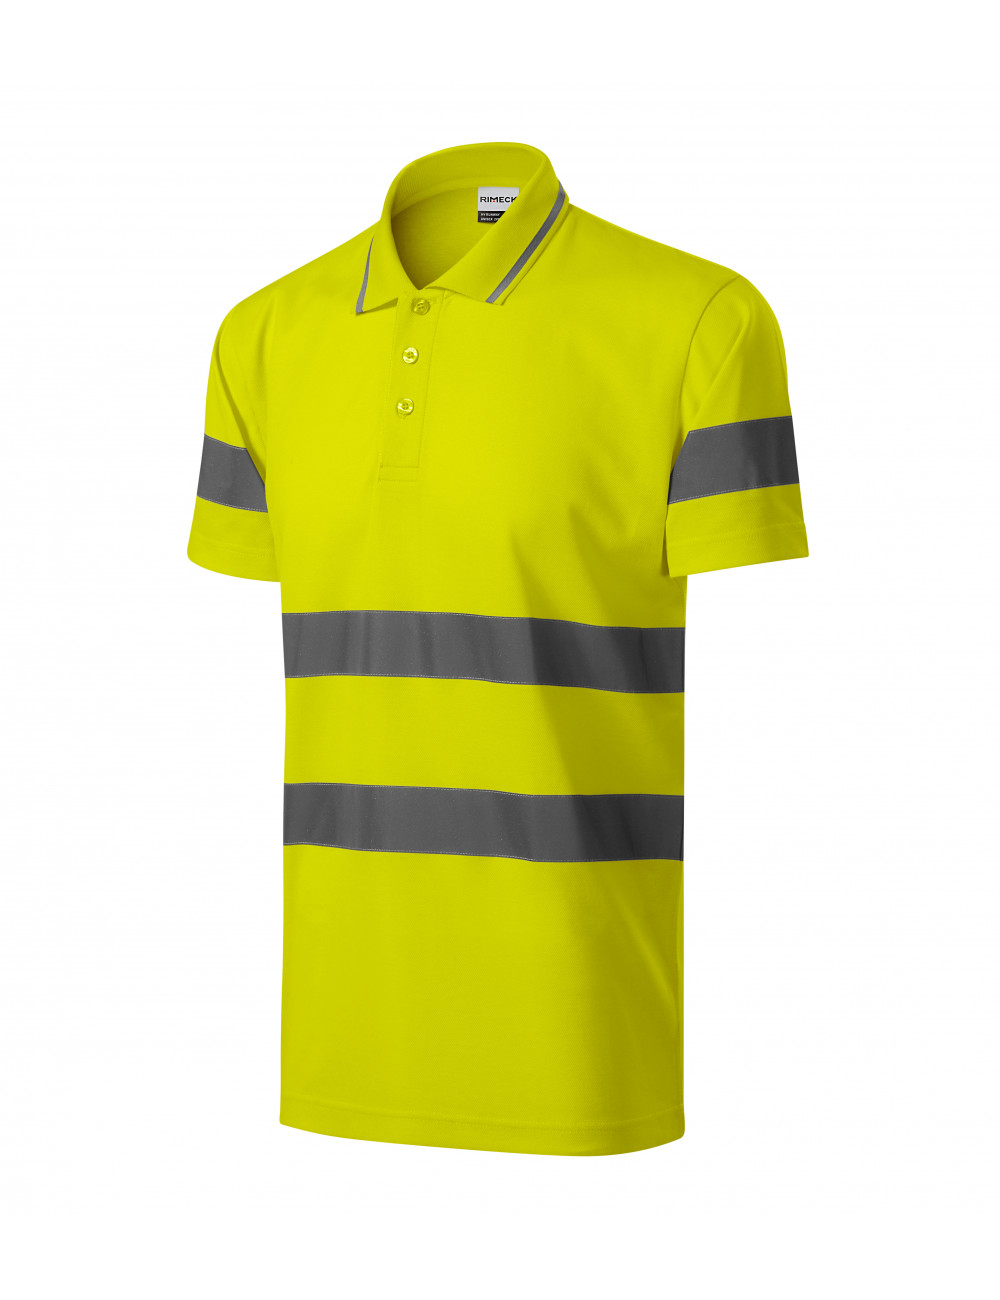 High-visibility clothing with a logo will make you stand out even better